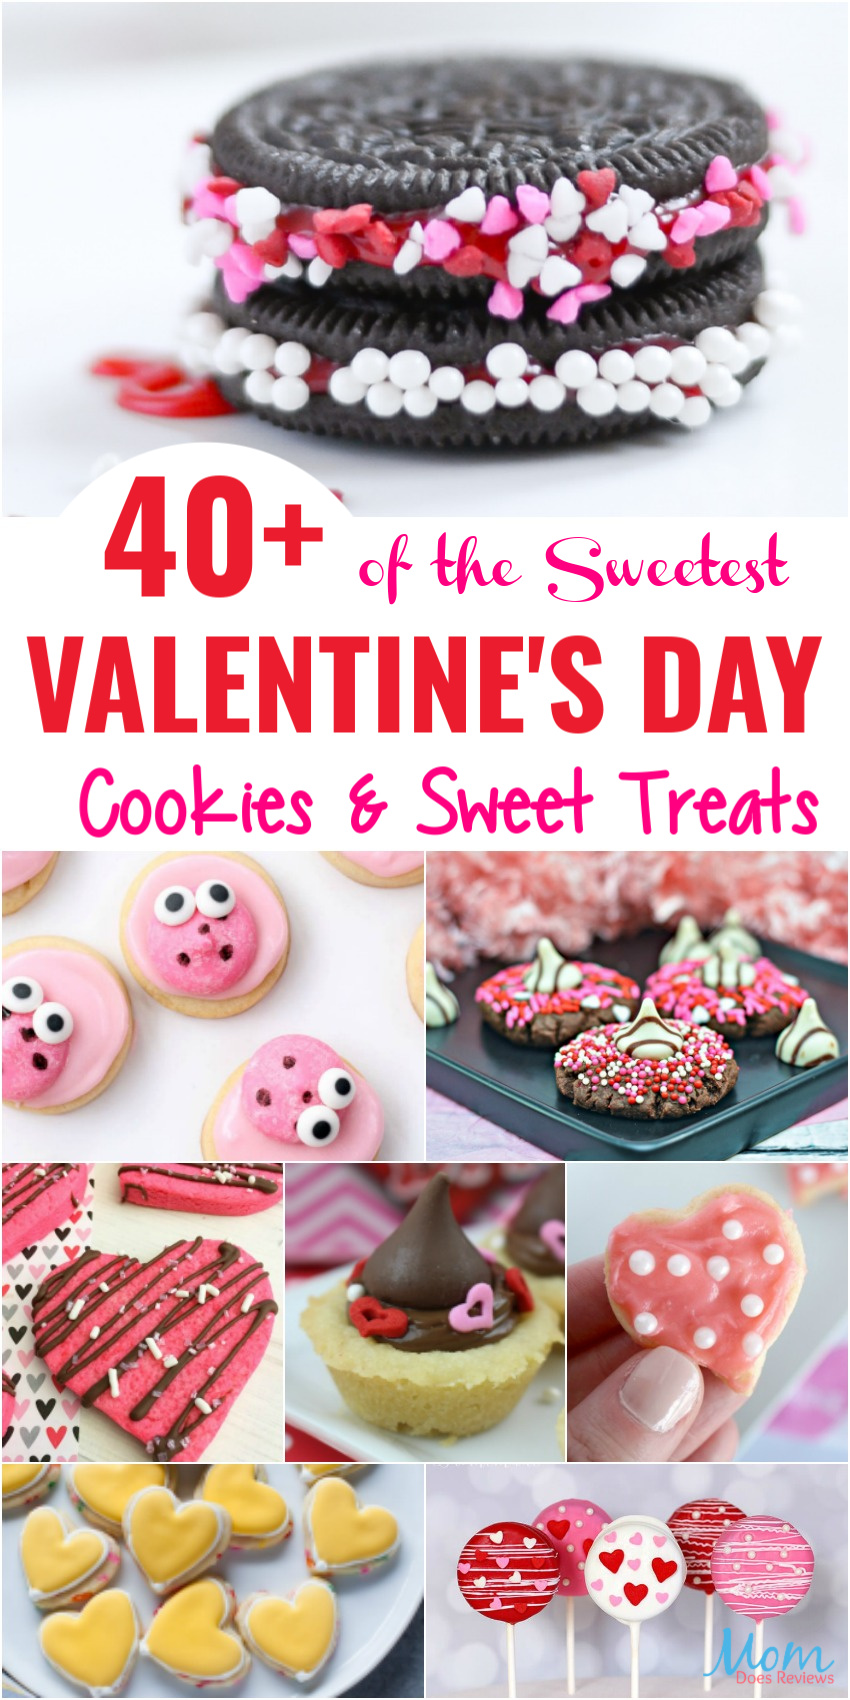 40+ of the Sweetest Valentine's Day Cookies & Treats #valentinesday #sweets #cookies